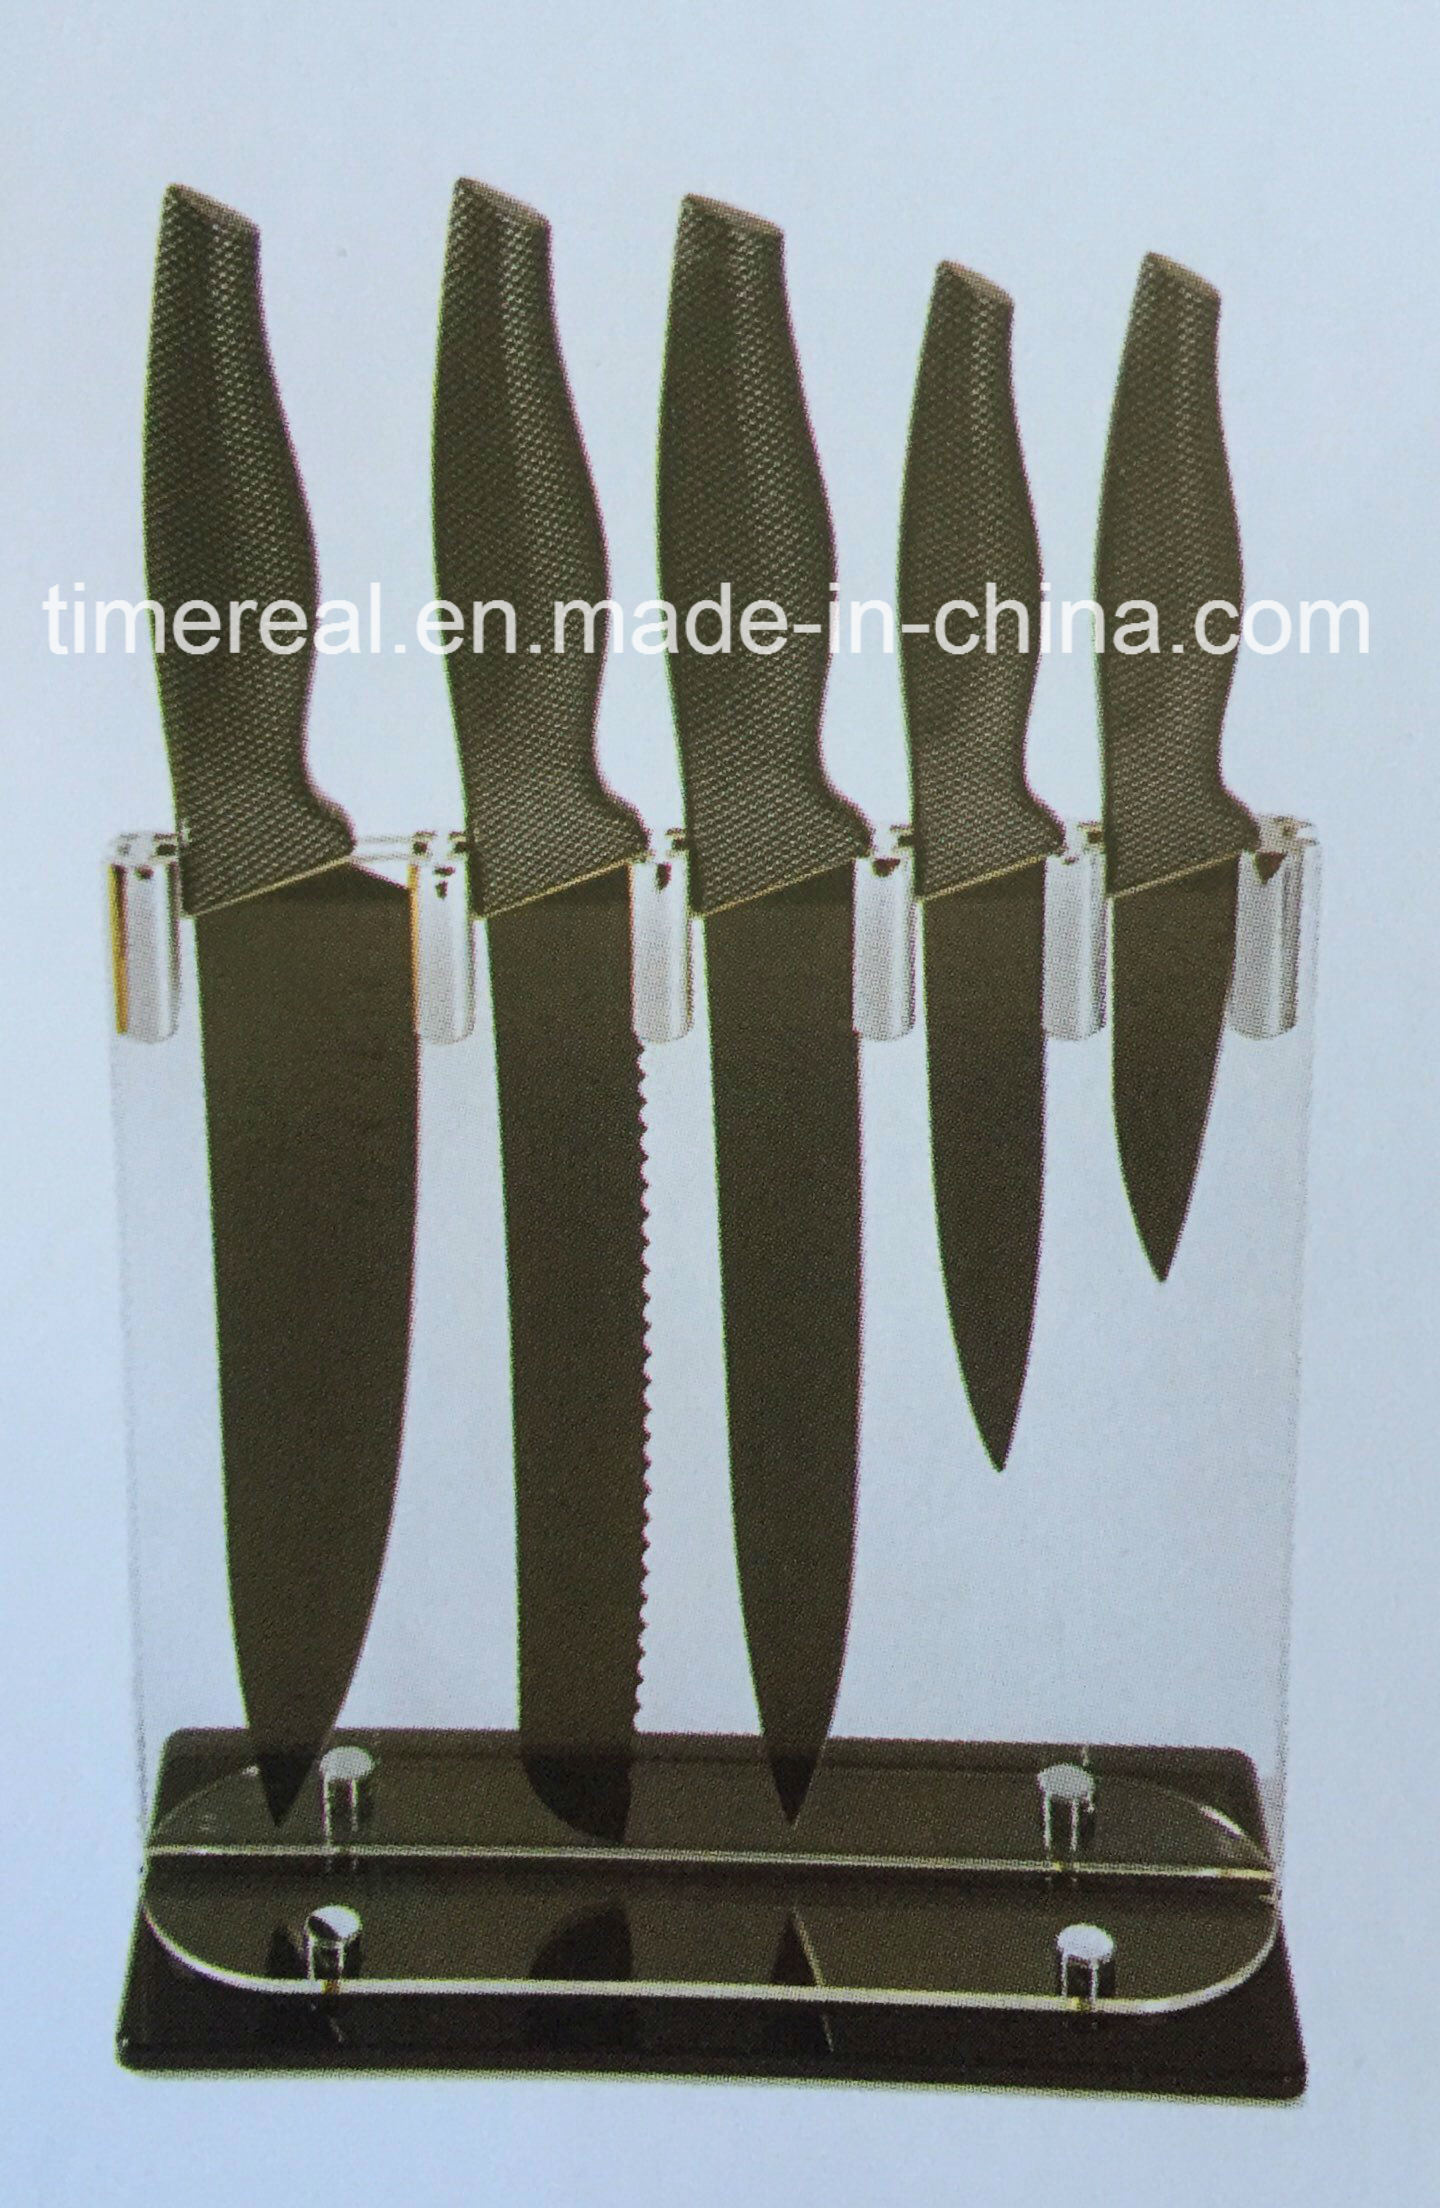 Stainless Steel Kitchen Knives Set with Painting No. Fj-0055